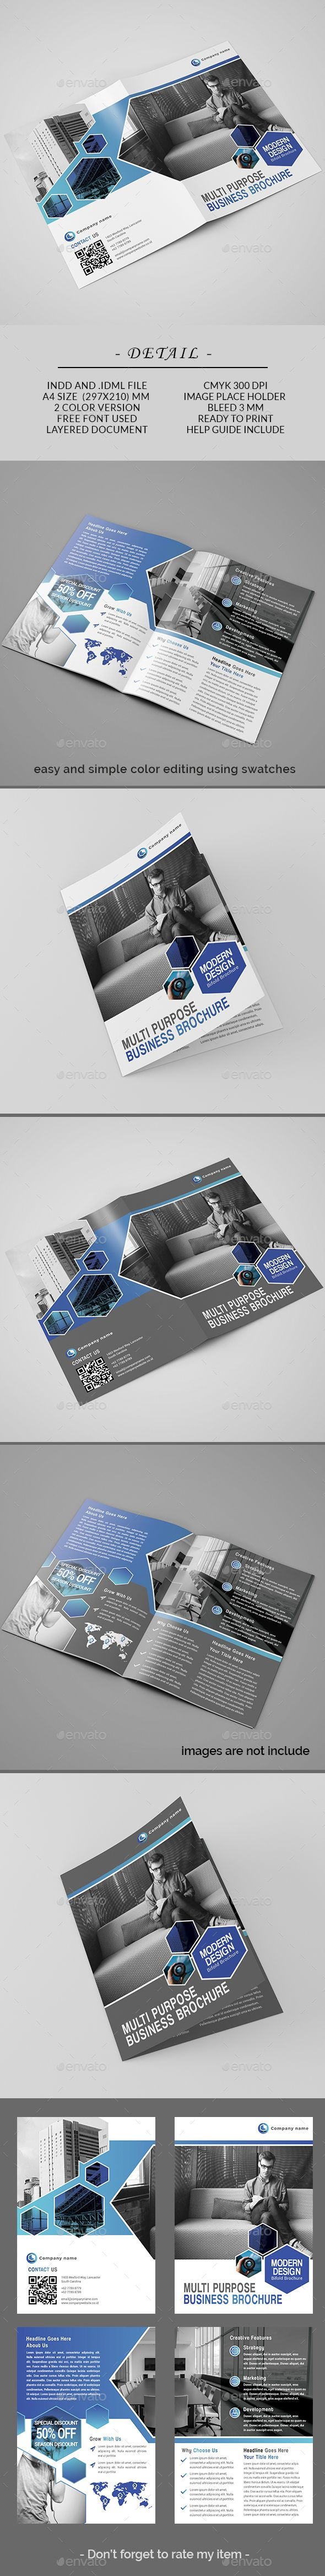 Bifold Brochure Bi-fold Brochure template, Can use for any personal or corporate, Very easily to edit, Very easy to adapt and customize, with help file included. Detail Bi-fold Brochure      4 pages     2 colour version     indesign files (.indd and .idml)     CMYK Color Mode     300 DPI Resolution     Size A4     3 mm Bleed in Each Side